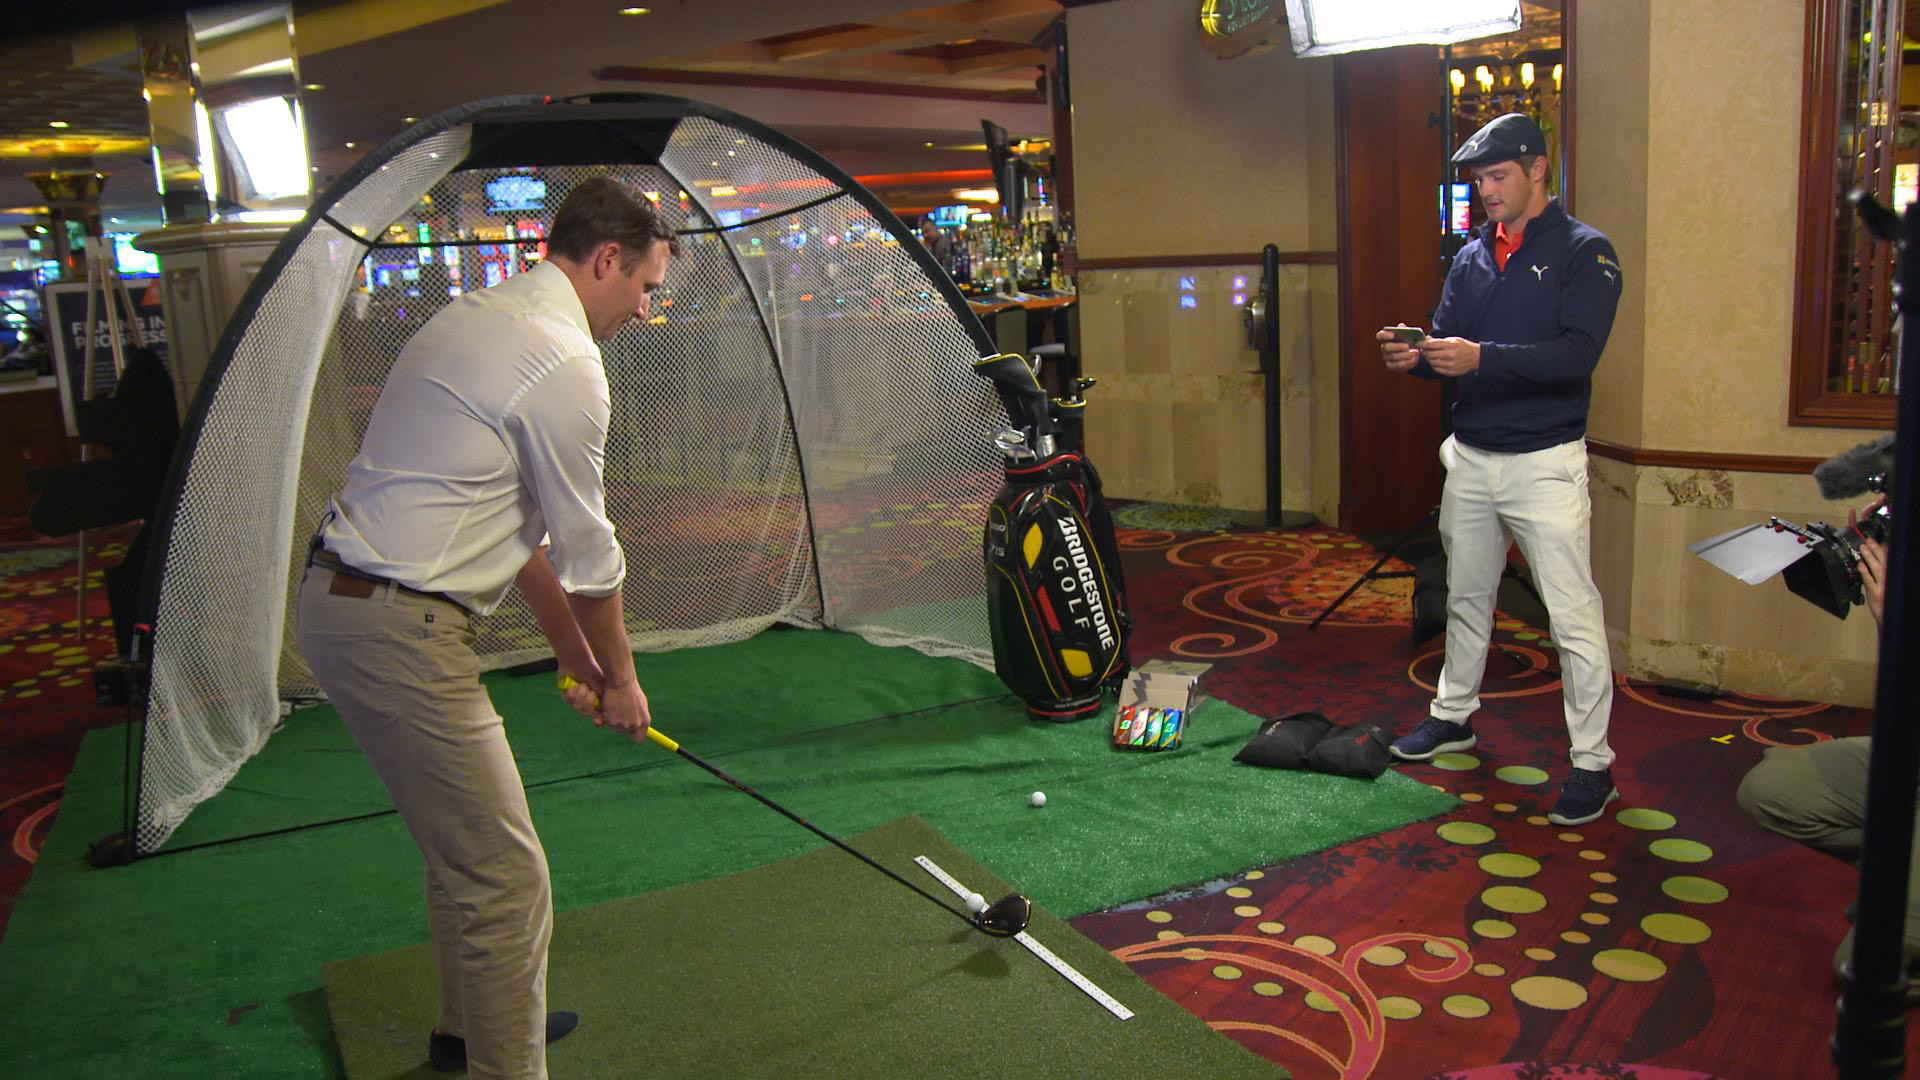 PGA Tour pro Bryson DeChambeau helps demonstrate Bridgestone's new BFIT app.